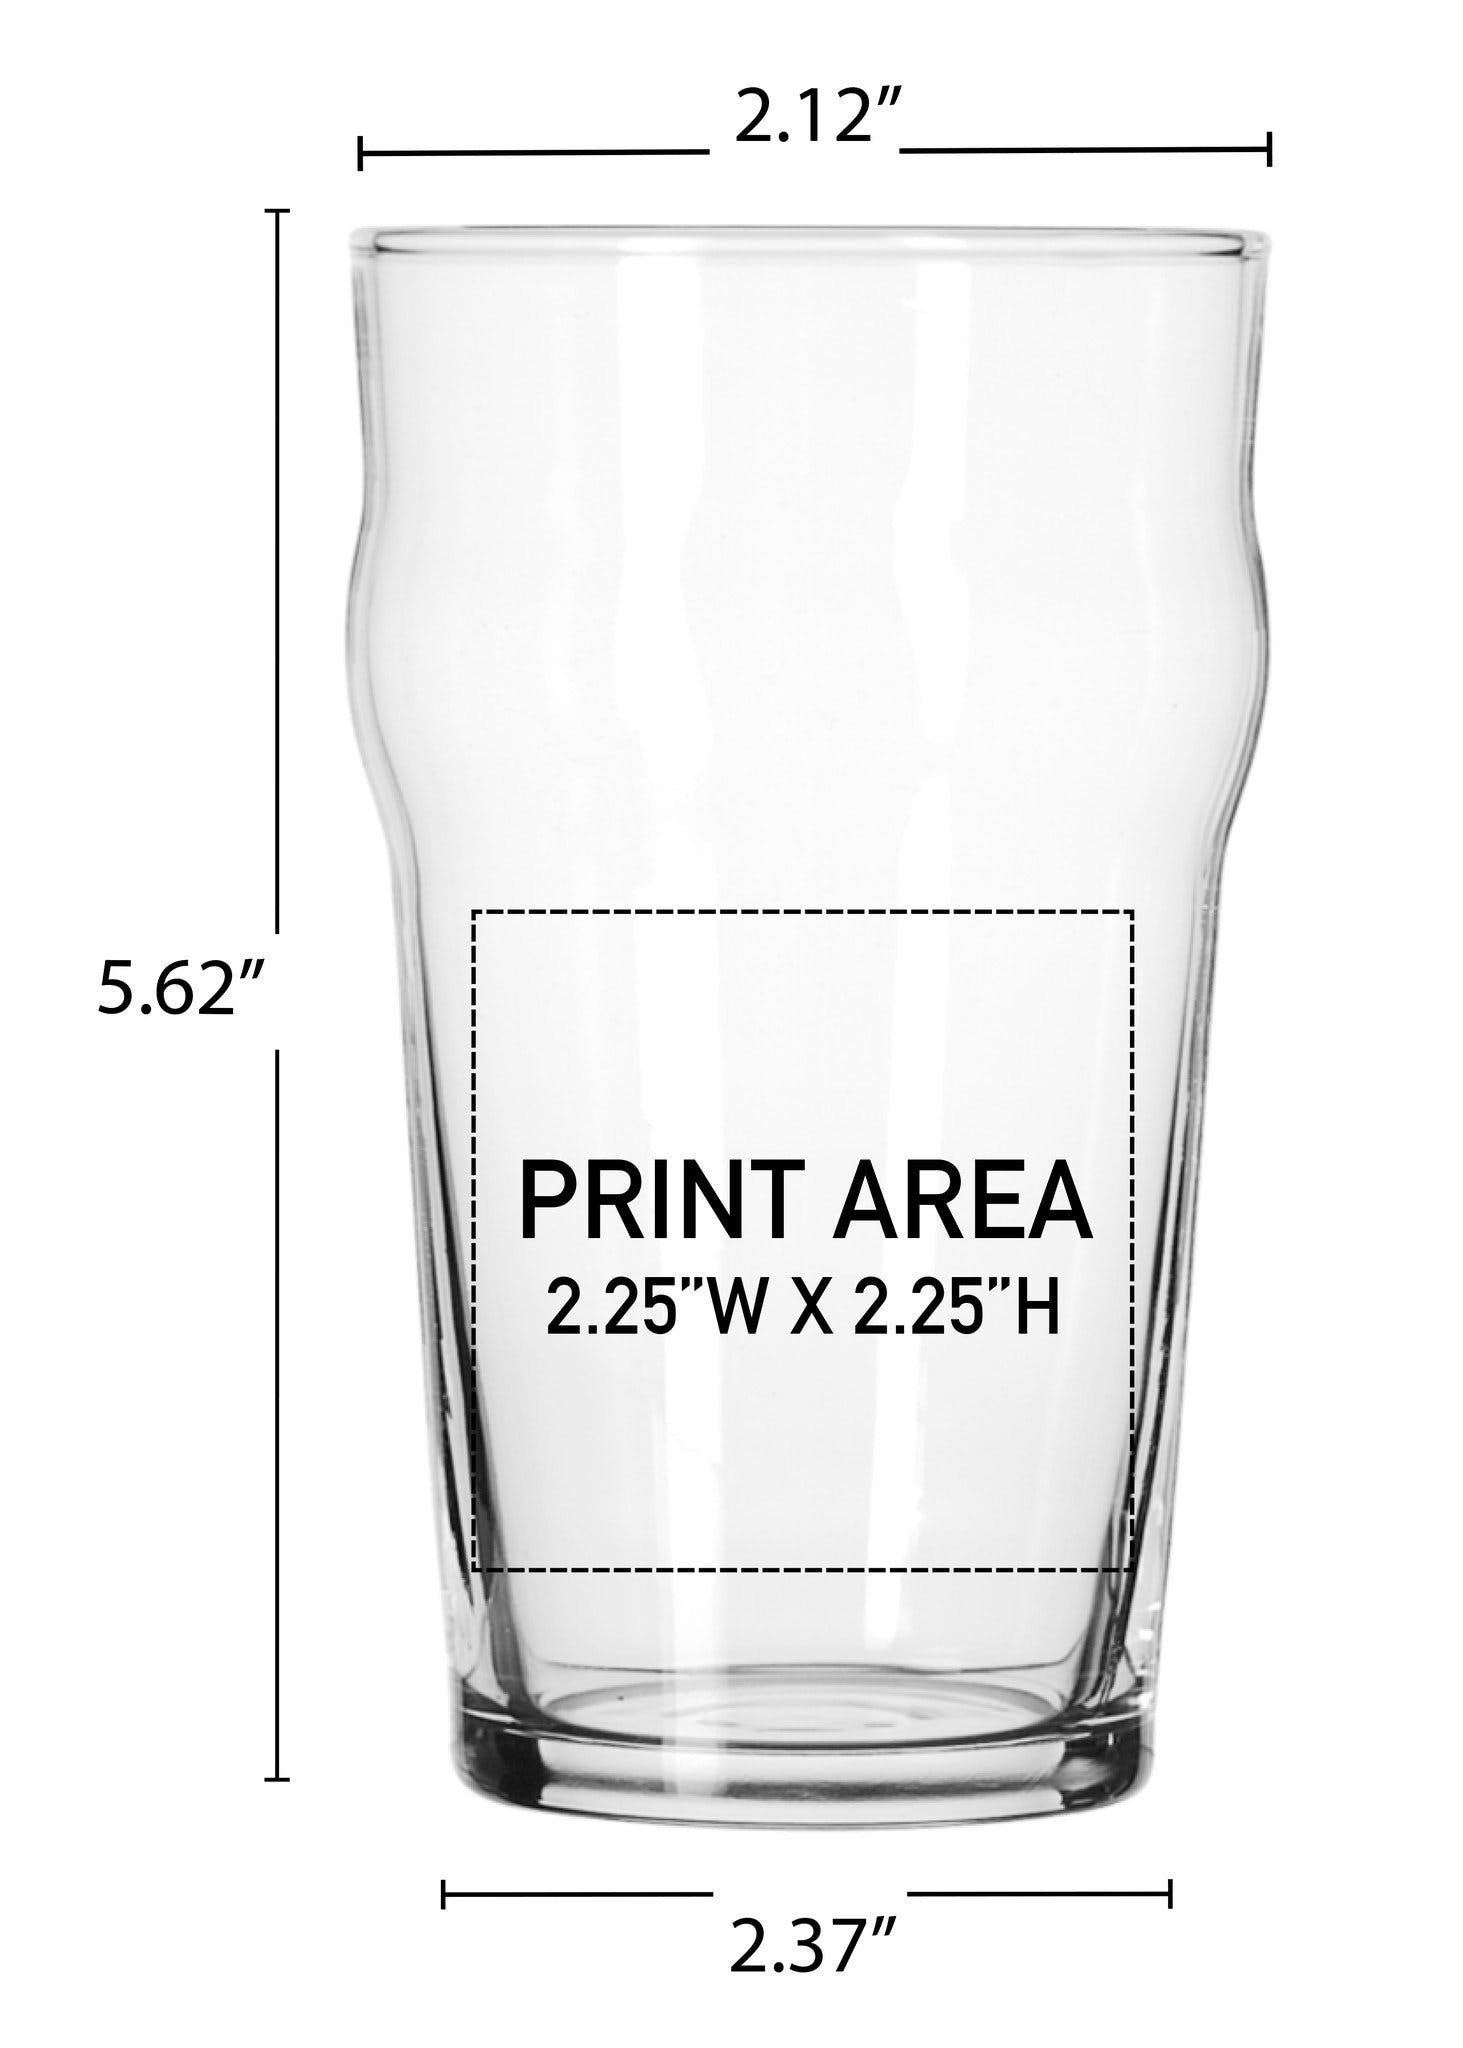 16 oz. Nonic Pub #605 - sold by Clearwater Gear